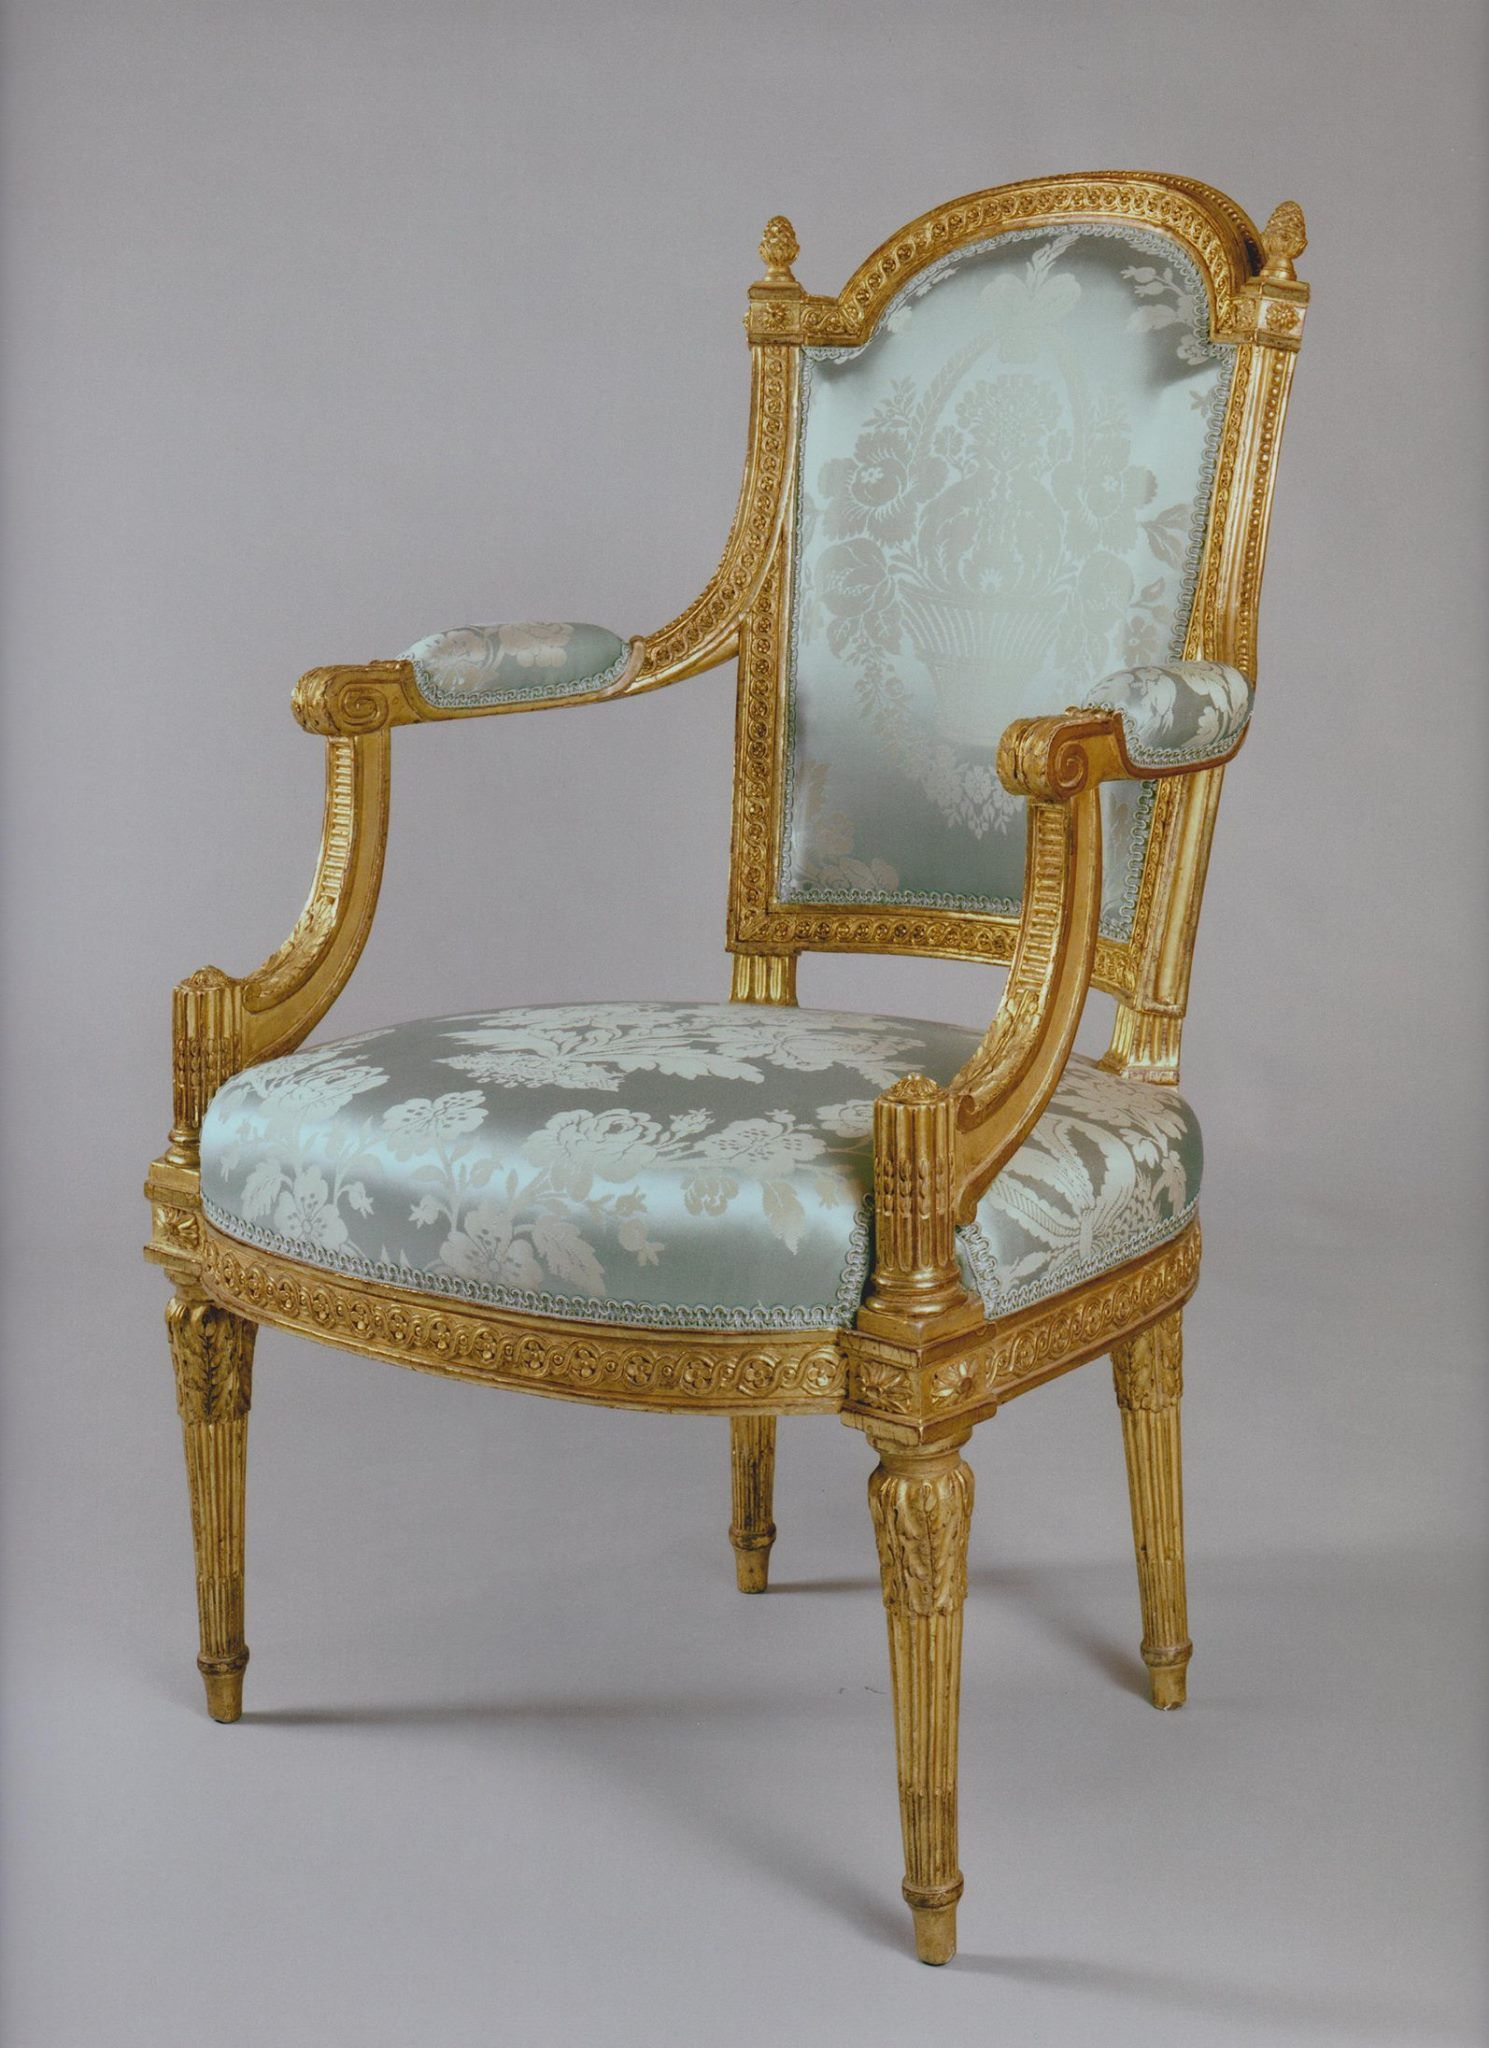 A Set Of Louis XVI Chairs, Comprising Two Chairs And Two Armchairs, Stamped  JBB